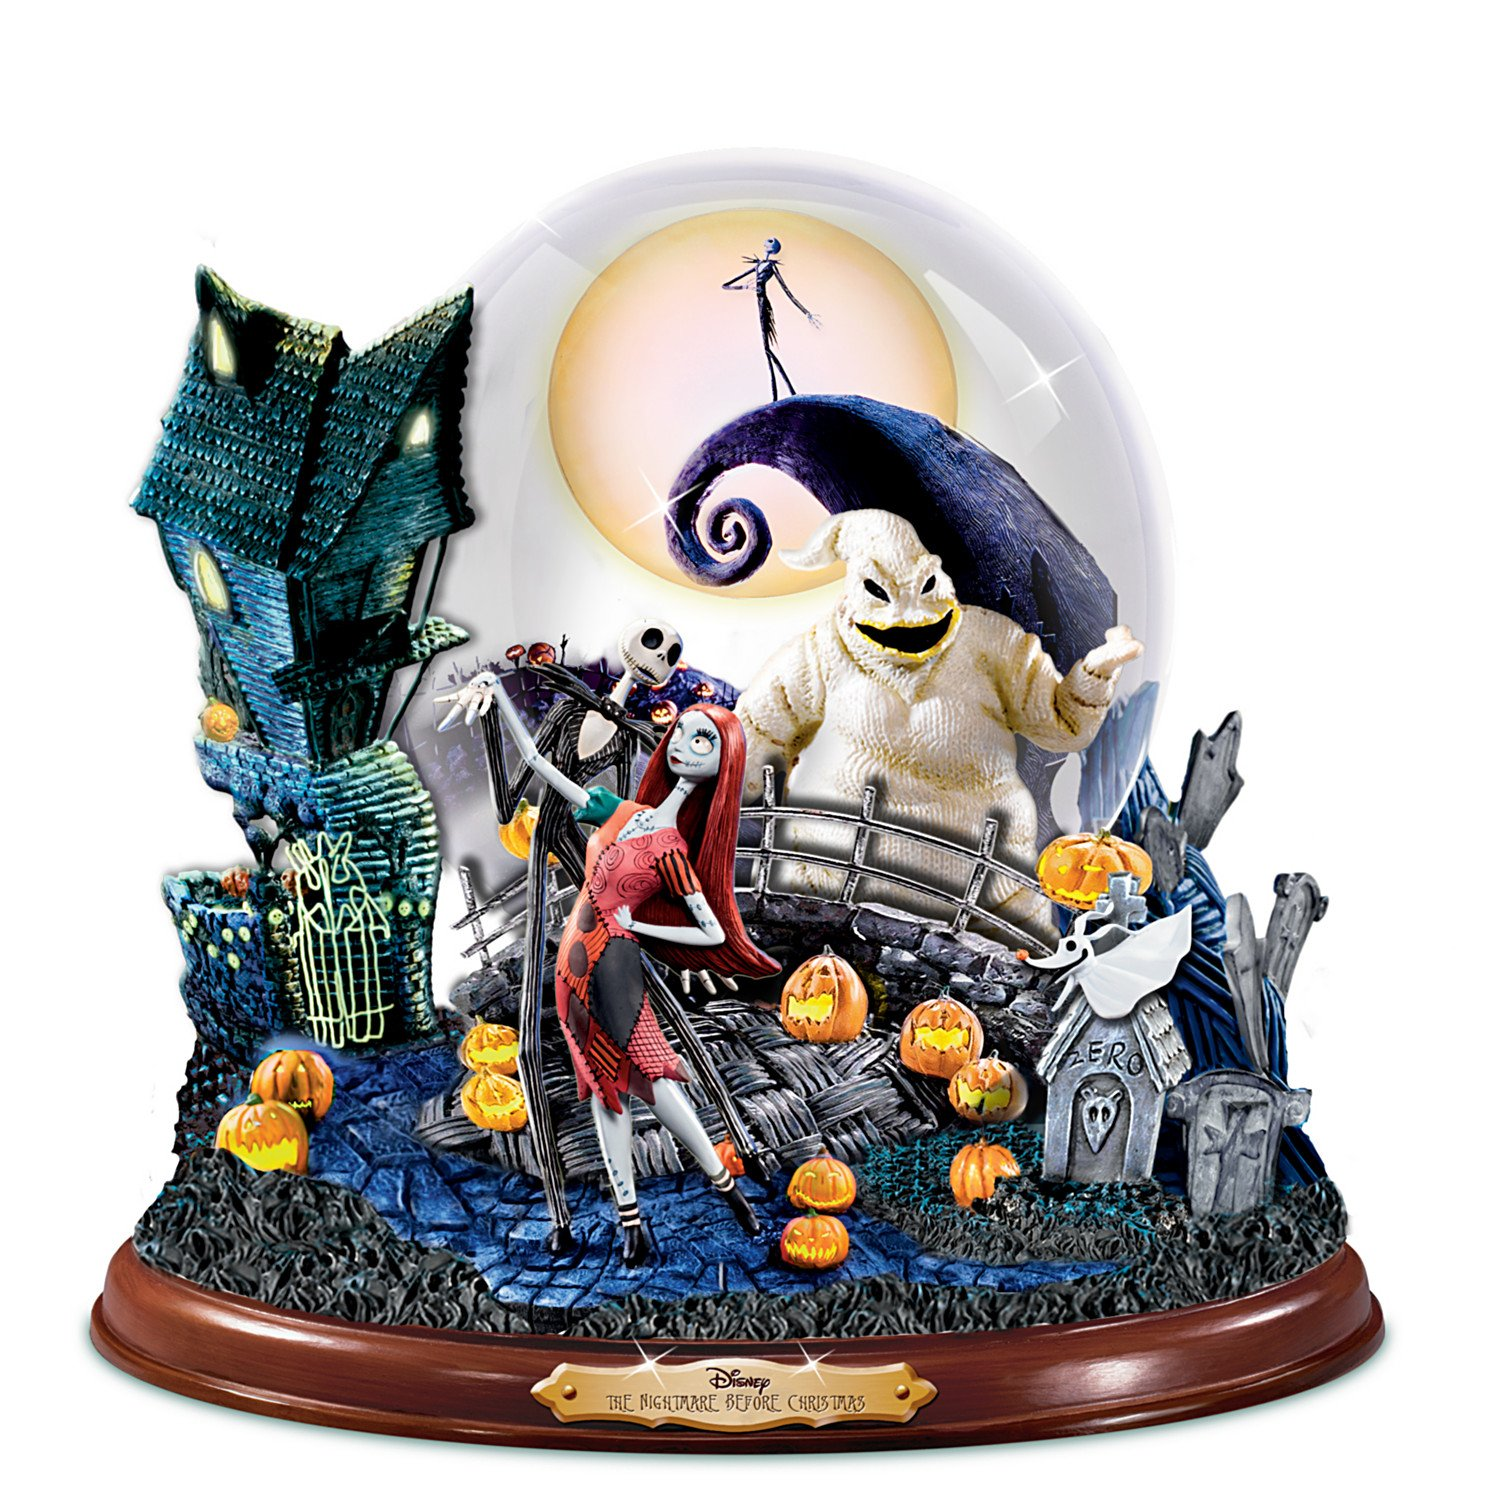 Disney Tim Burton's The Nightmare Before Christmas Illuminated Musical Snowglobe by The Bradford Exchange by Bradford Exchange (Image #6)